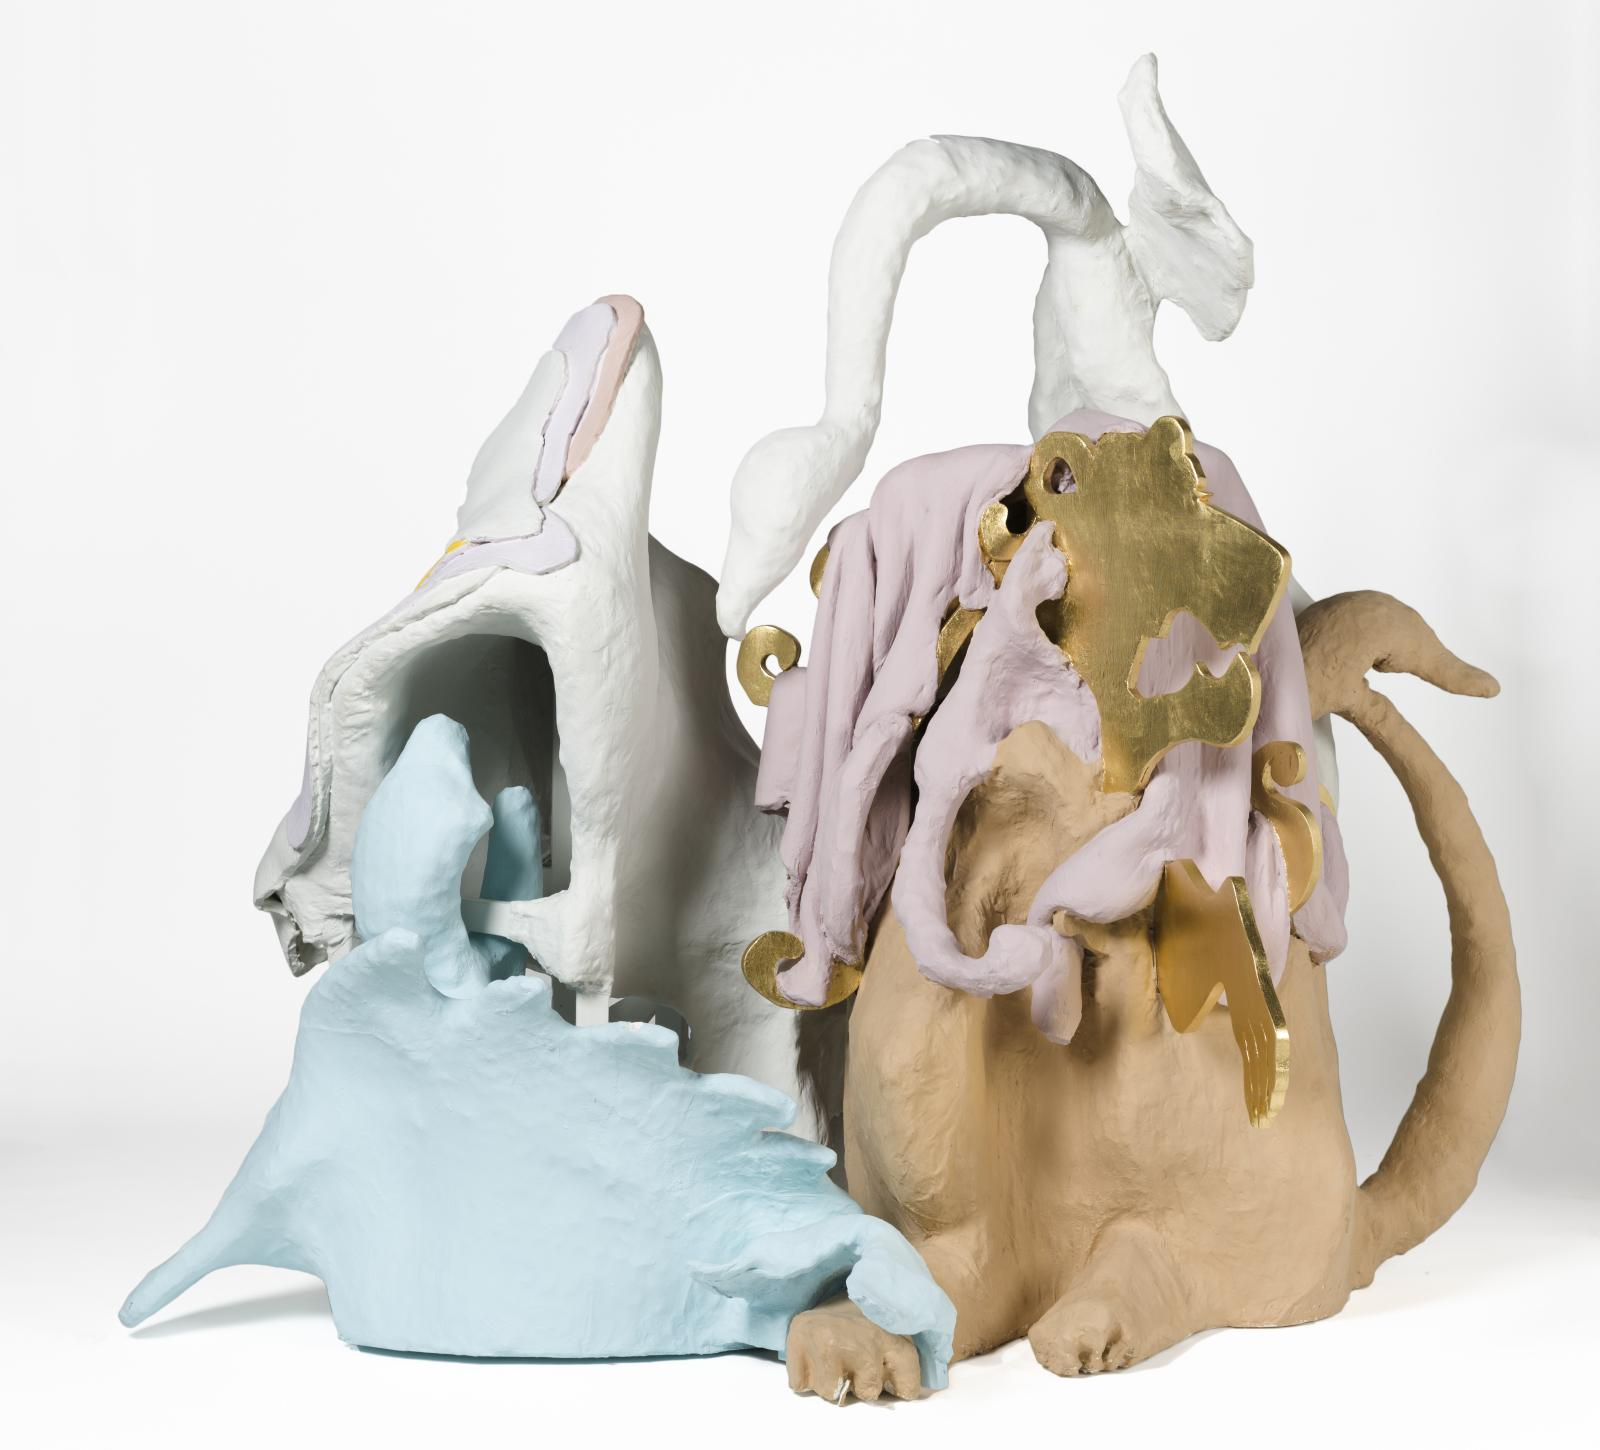 A sculpture that appears to be made of light blue, tan, gray, mauve, and white clay. It is shaped into animal-like forms like paws and tails, but remains abstract.